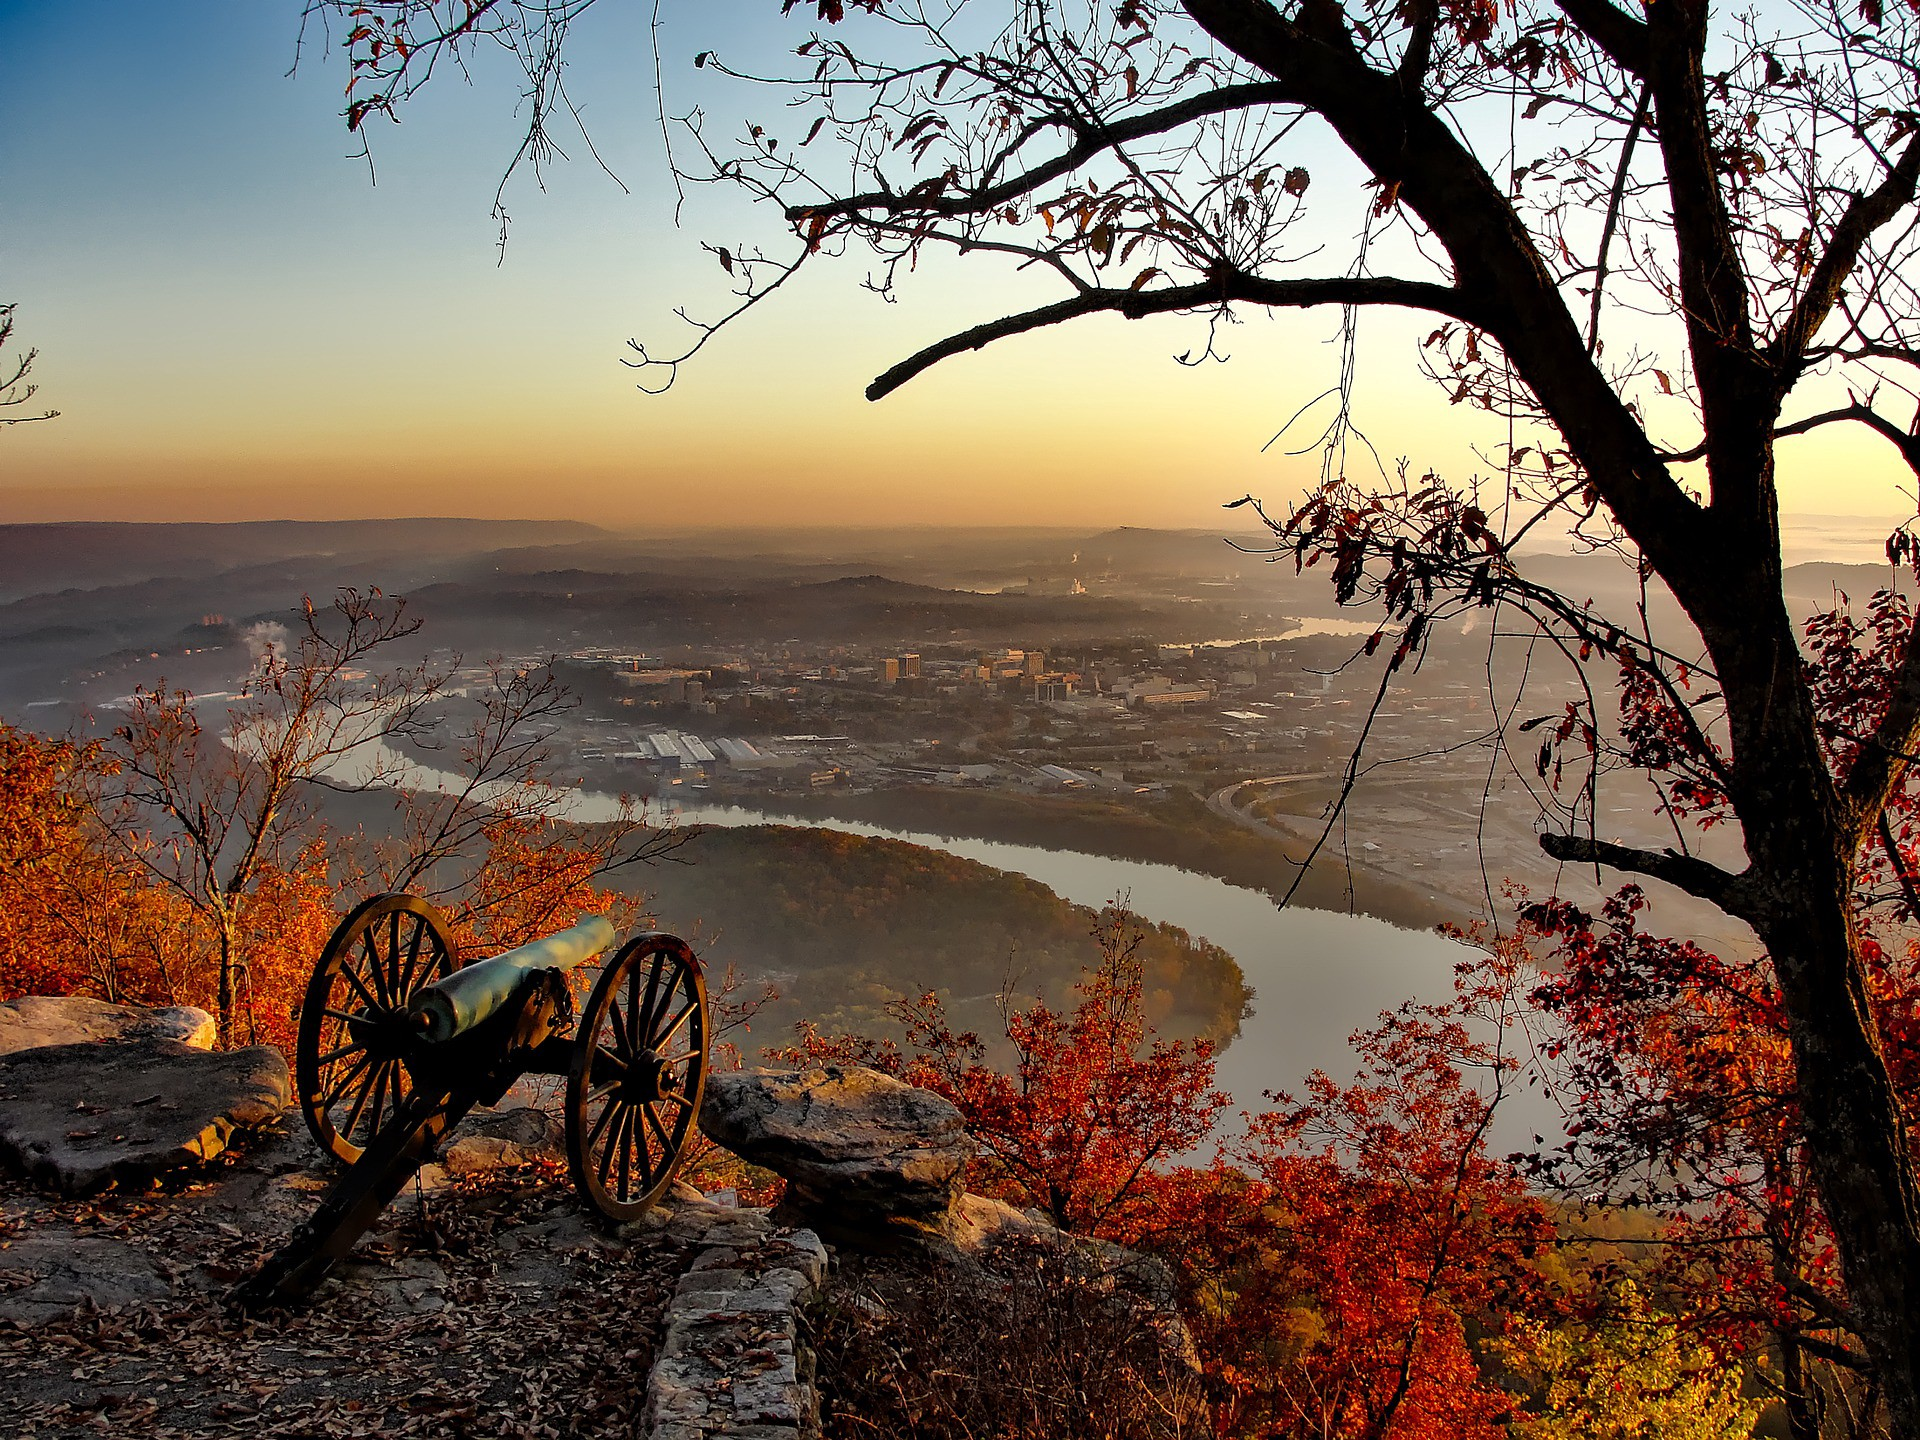 Tale of Two Cities-Pollution in Chattanooga - Wynd - Medium